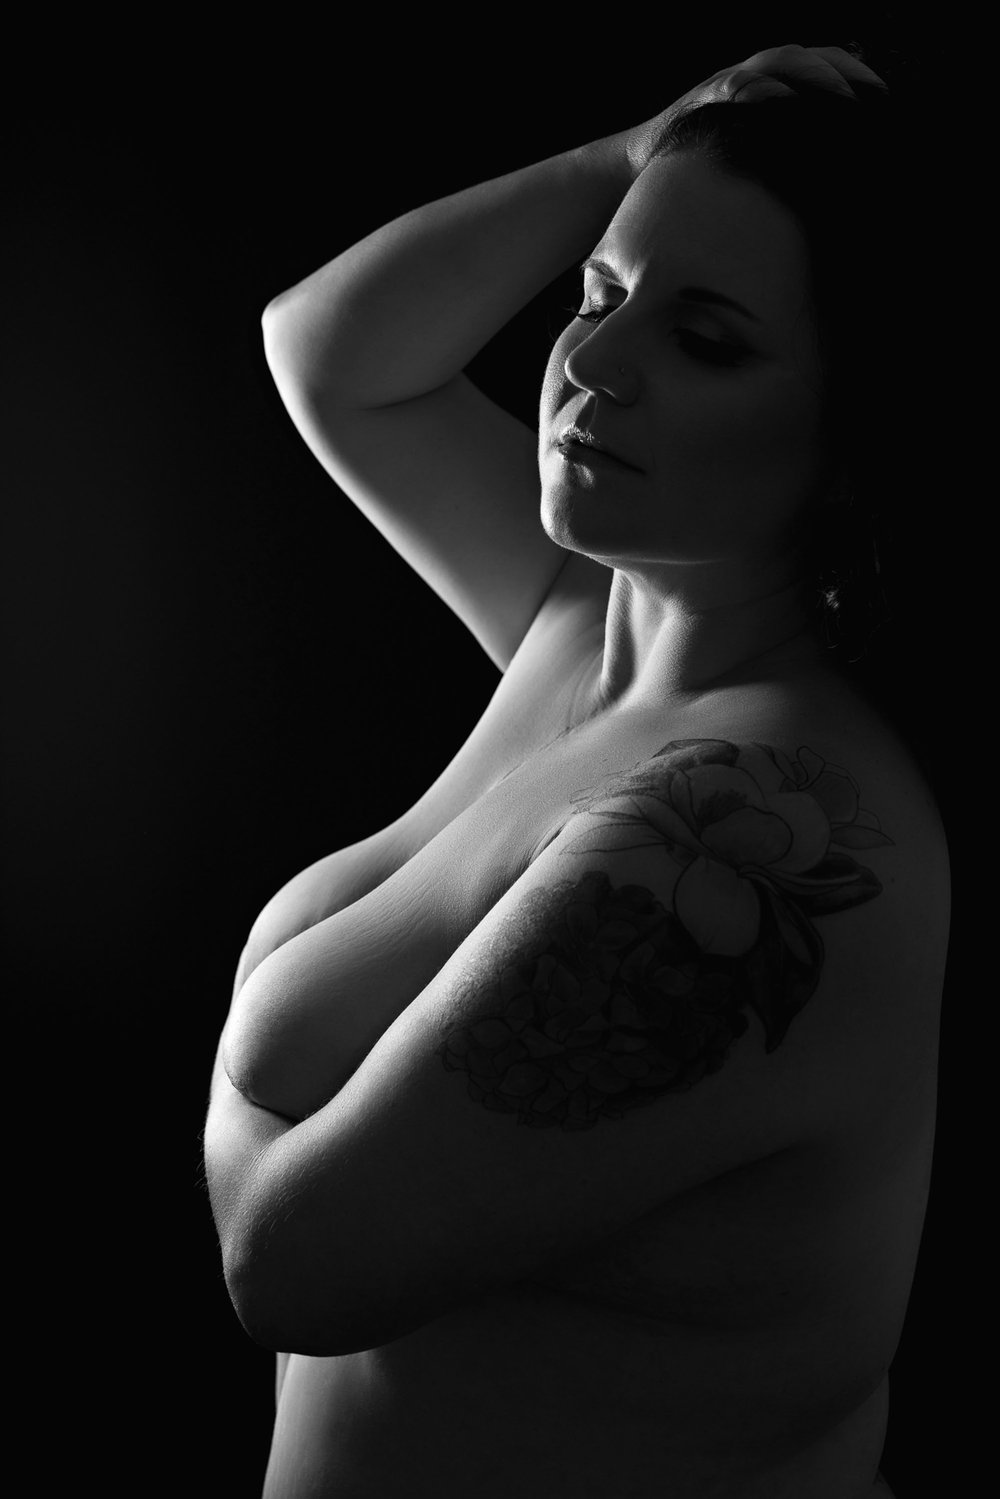 black and white bodyscape photography curvy woman